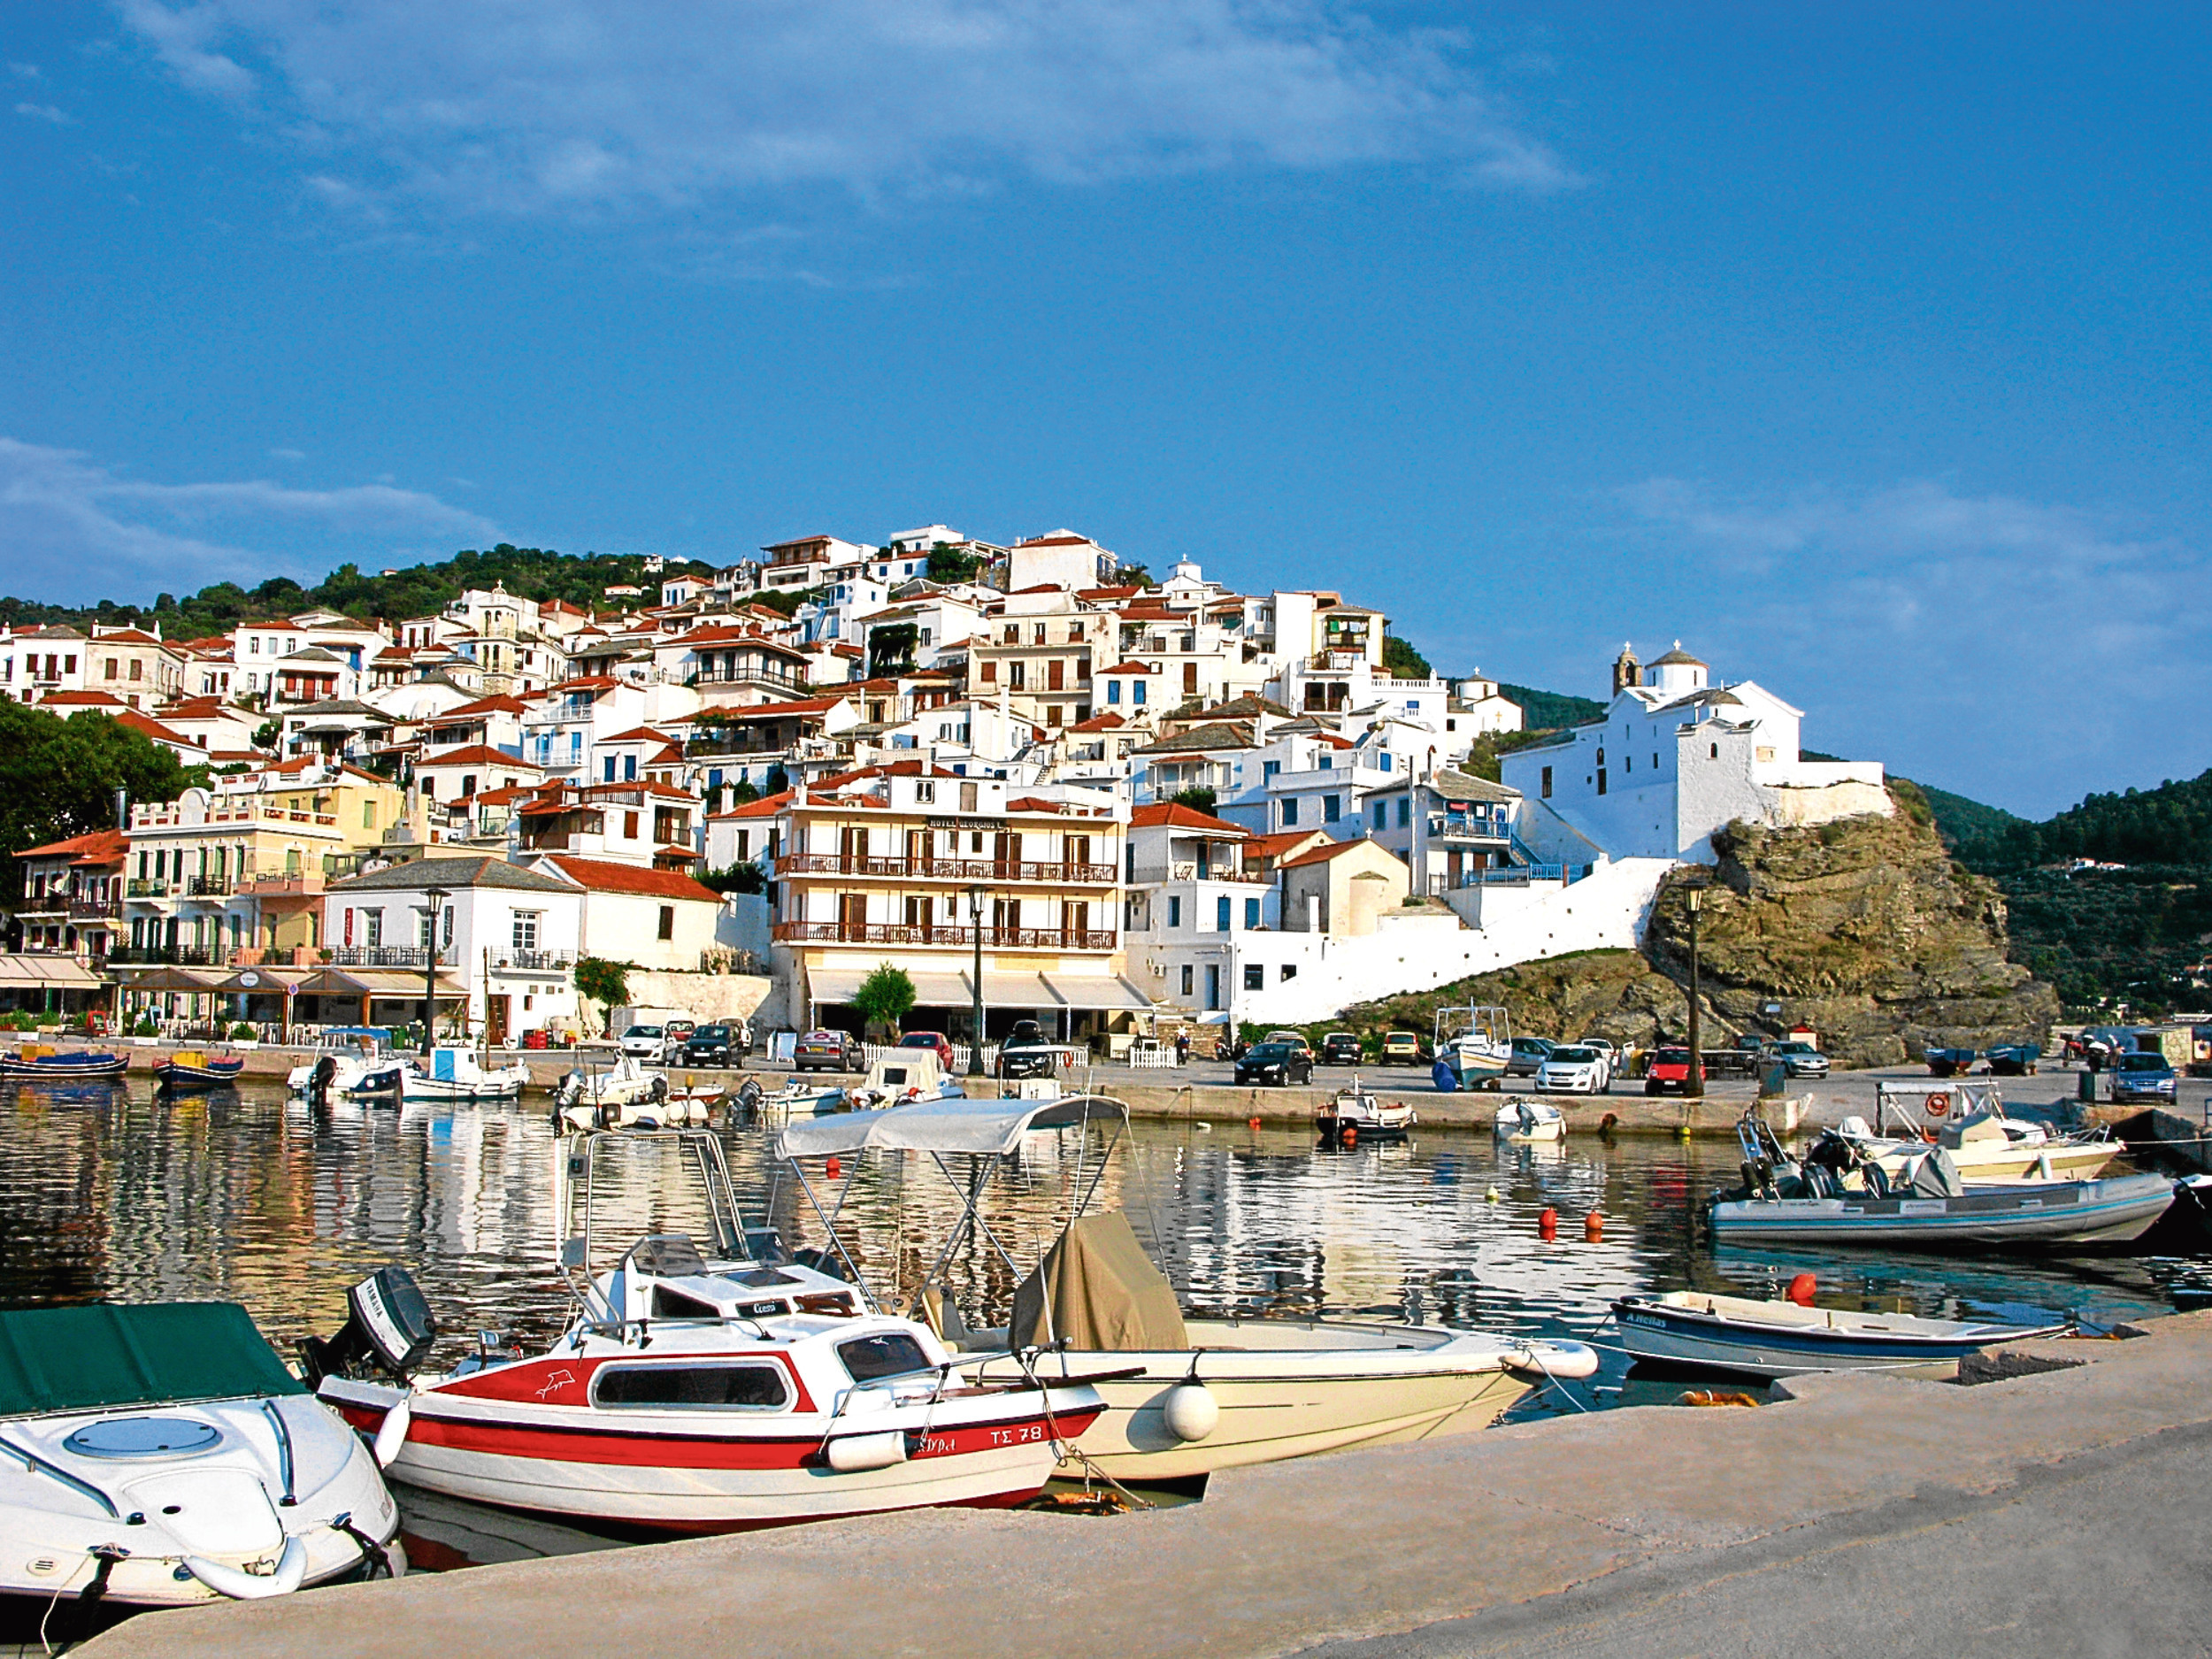 Skopelos town. View of the town from port. Skopelos island, Northern Sporades, Greece. (iStock)